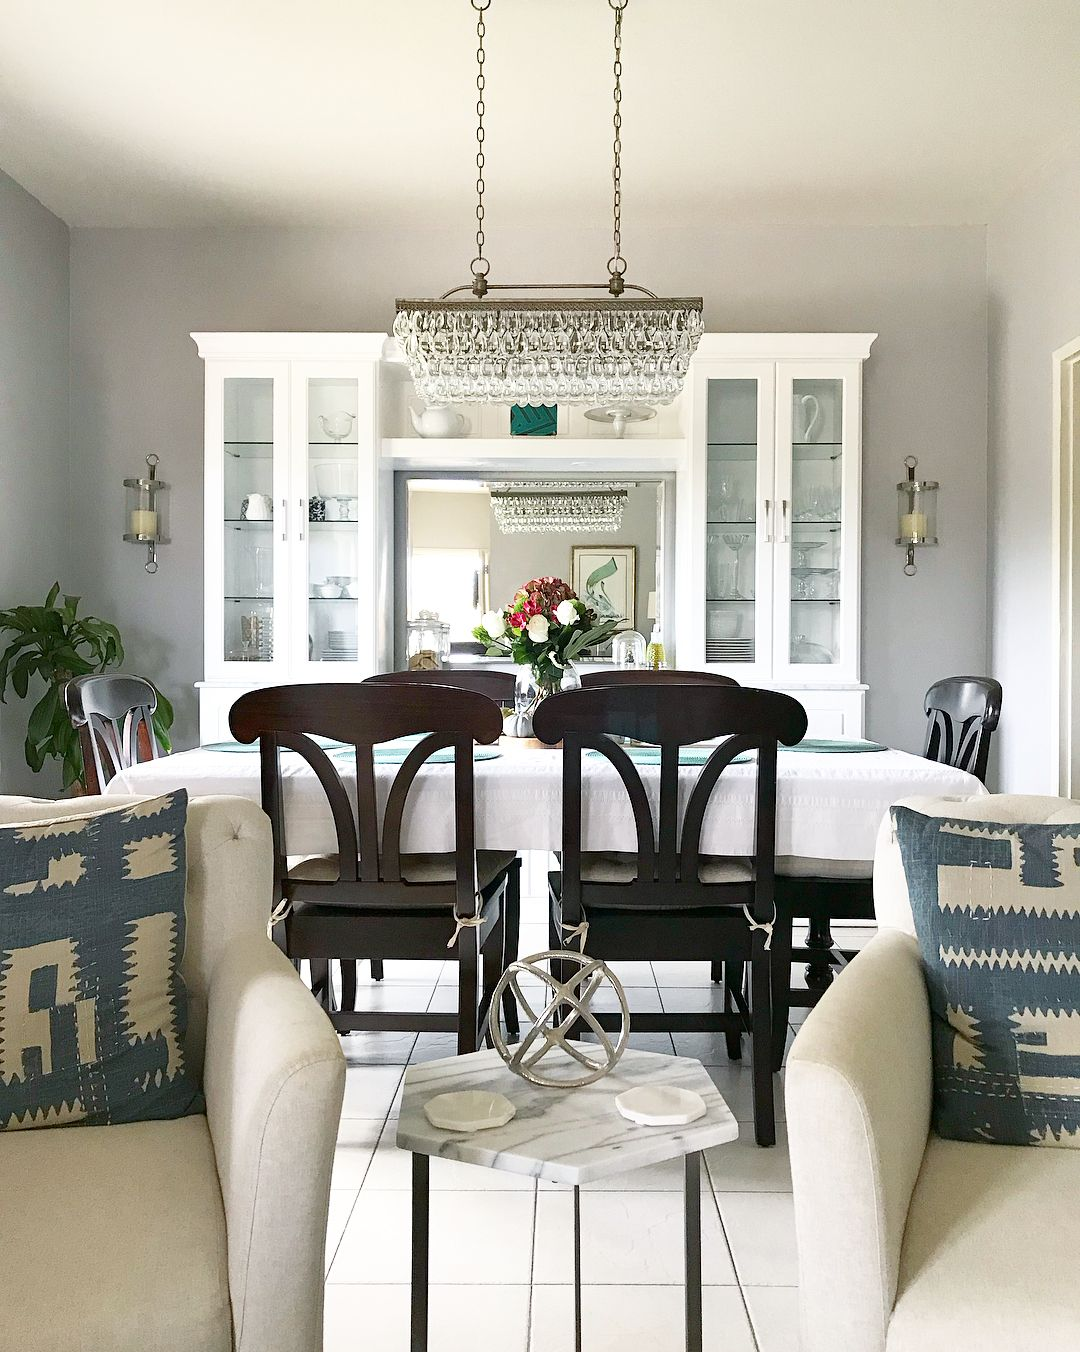 Clarissa chandelier from pottery barn the design souk www clarissa chandelier from pottery barn the design souk thedesignsouk arubaitofo Images